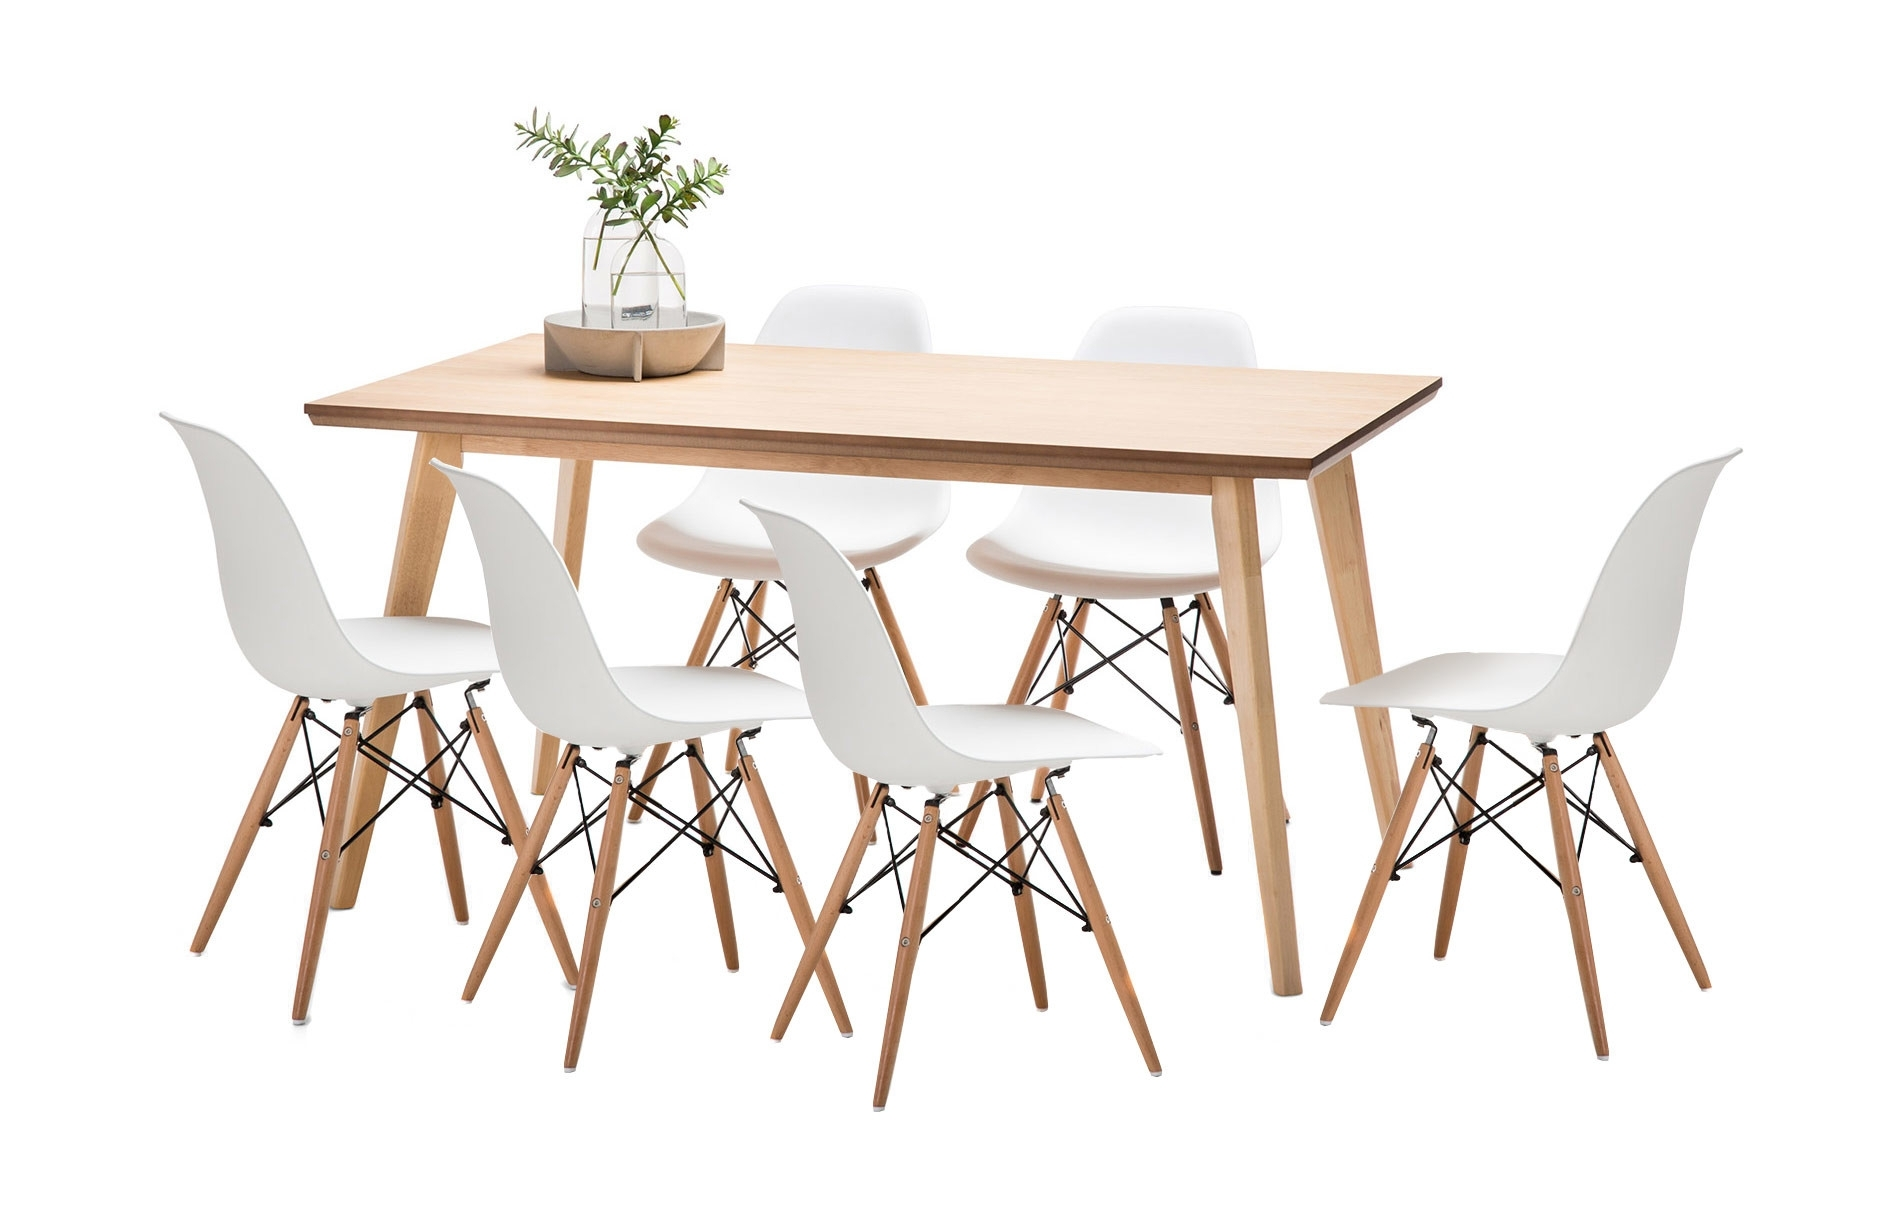 New Wyatt Dining Table Set With 6 Replica Eames Chairs | Ebay For Latest Wyatt Dining Tables (Image 13 of 20)